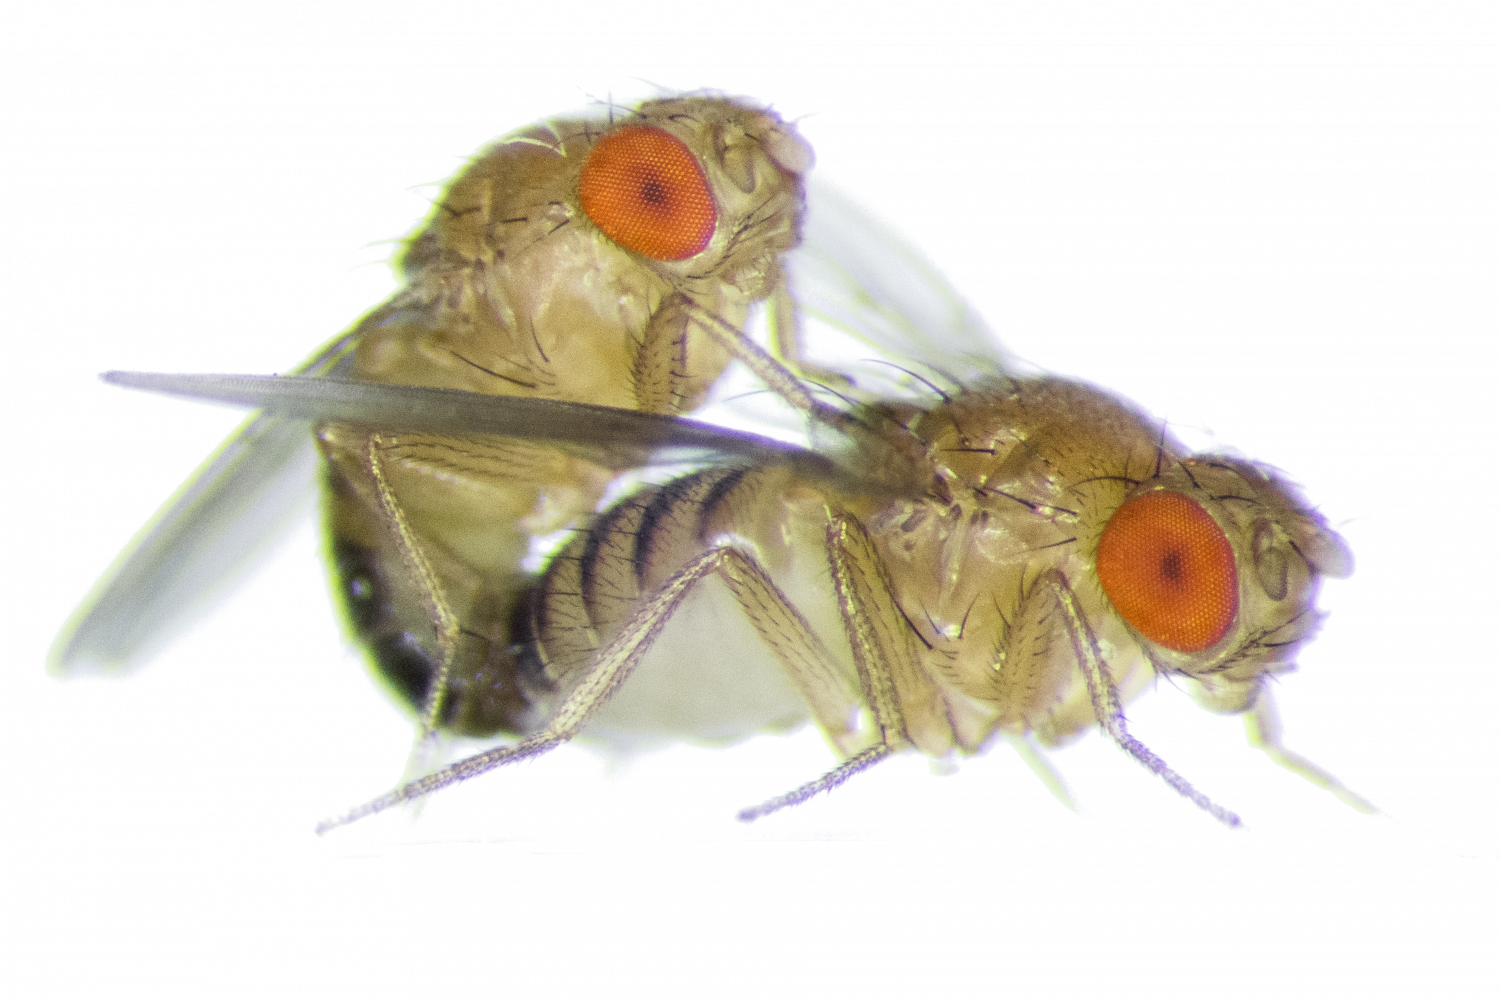 Fruit fly png. Frisky female flies become